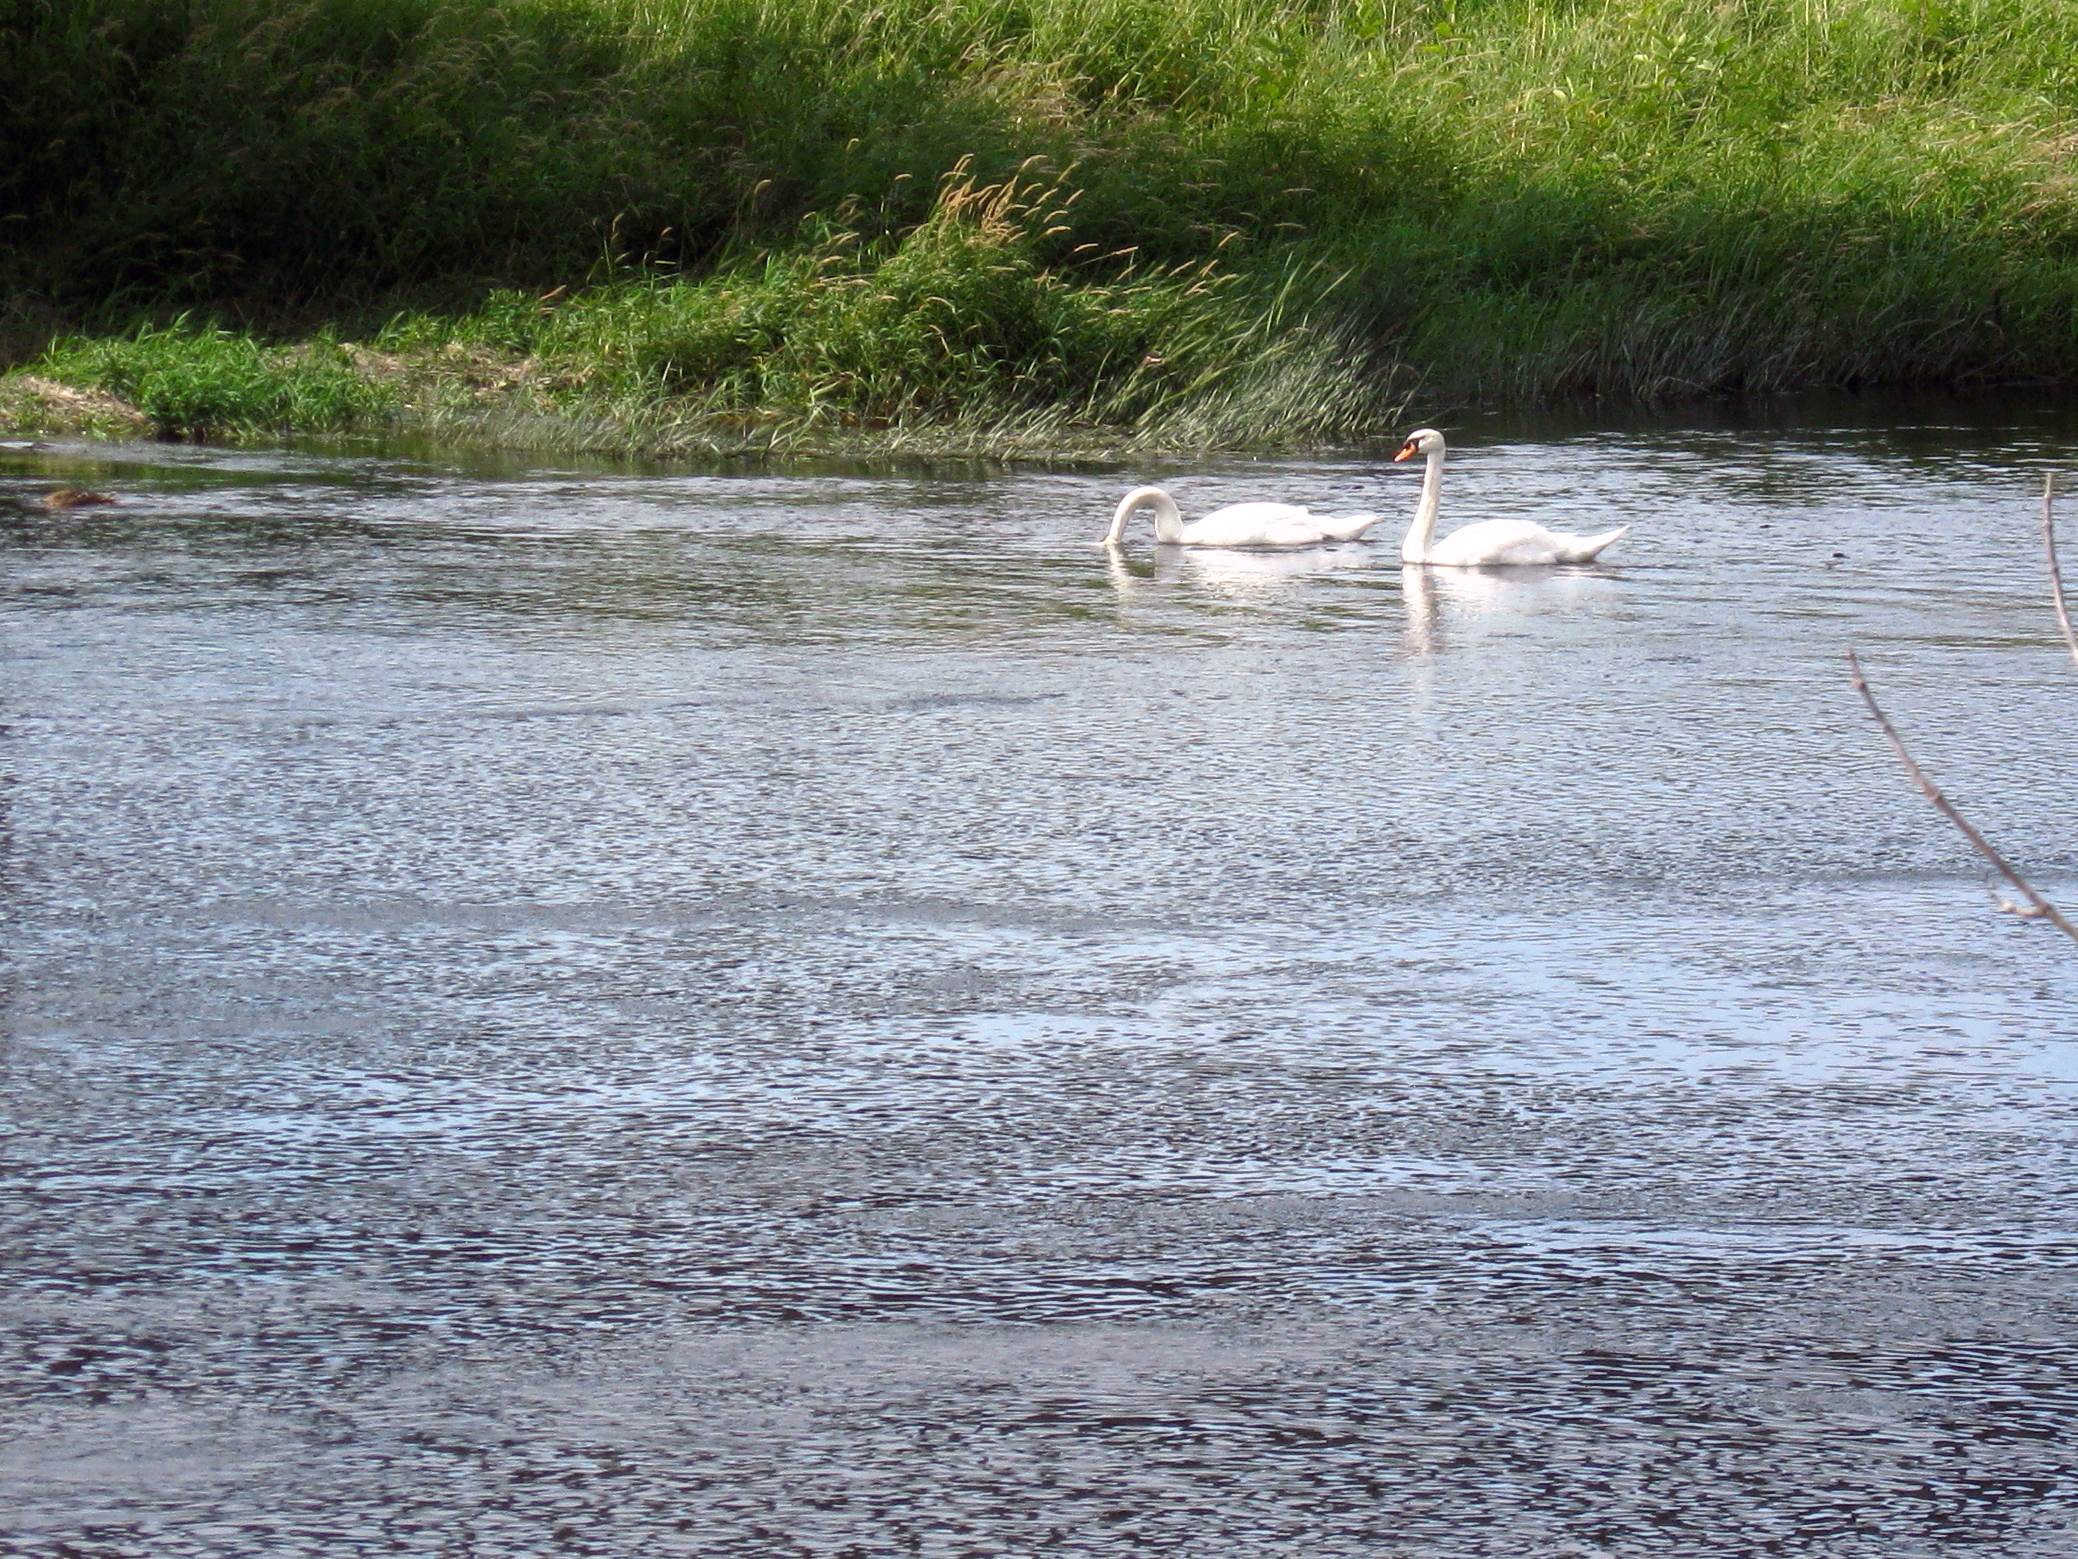 A pair of Royal swans swim along the far, green shore of the Rideau River.